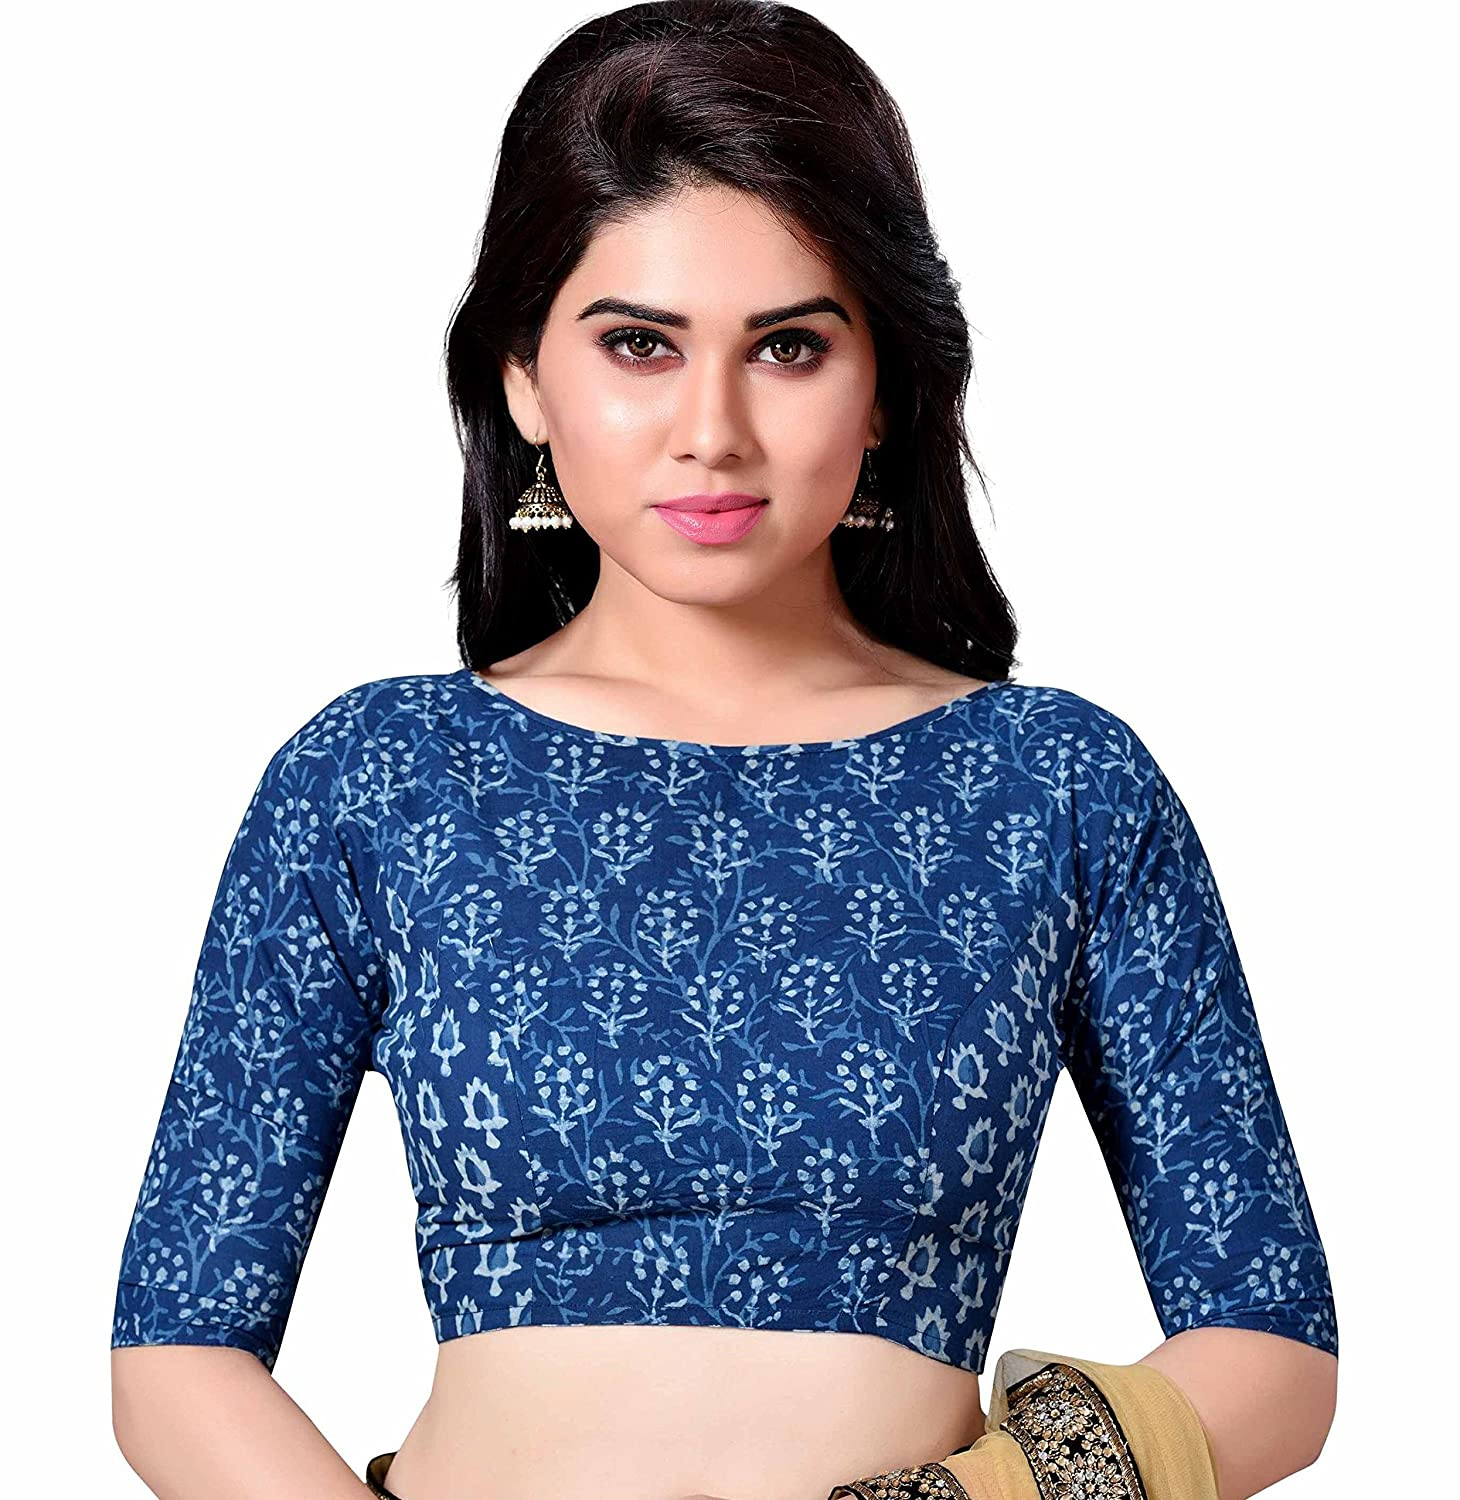 60d3ab1b9abf05 STUDIO SHRINGAAR LATEST PURE COTTON BLUE JAIPURI BLOCK PRINTED WOMENS SAREE  BLOUSE WITH BOAT NECK AND ELBOW LENGTH SLEEVES  Amazon.in  Clothing   ...